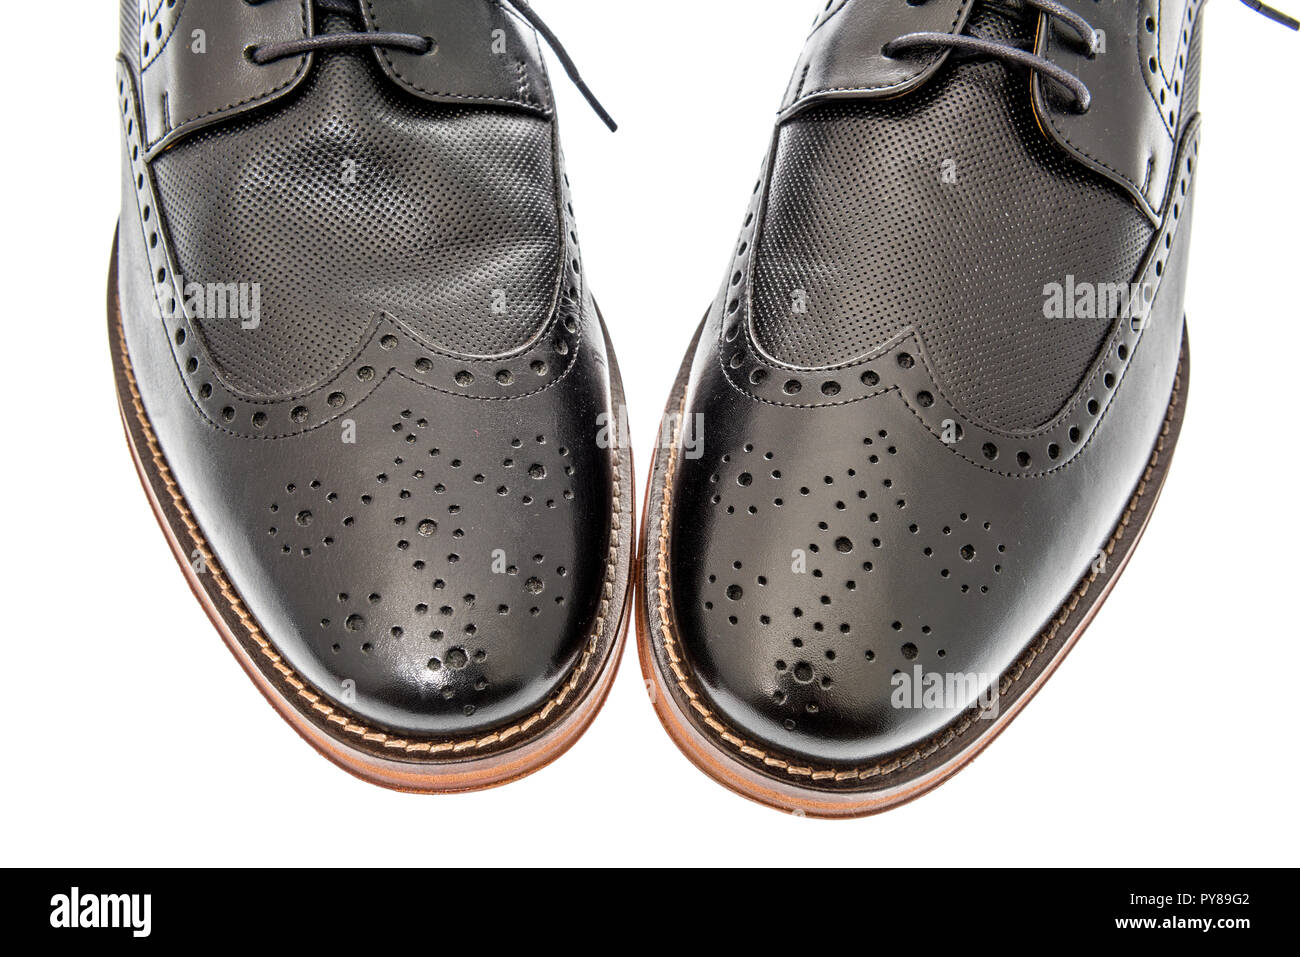 7c47e52c A close-up shot of a pair of mens black wingtip dress shoes on an isolated  background